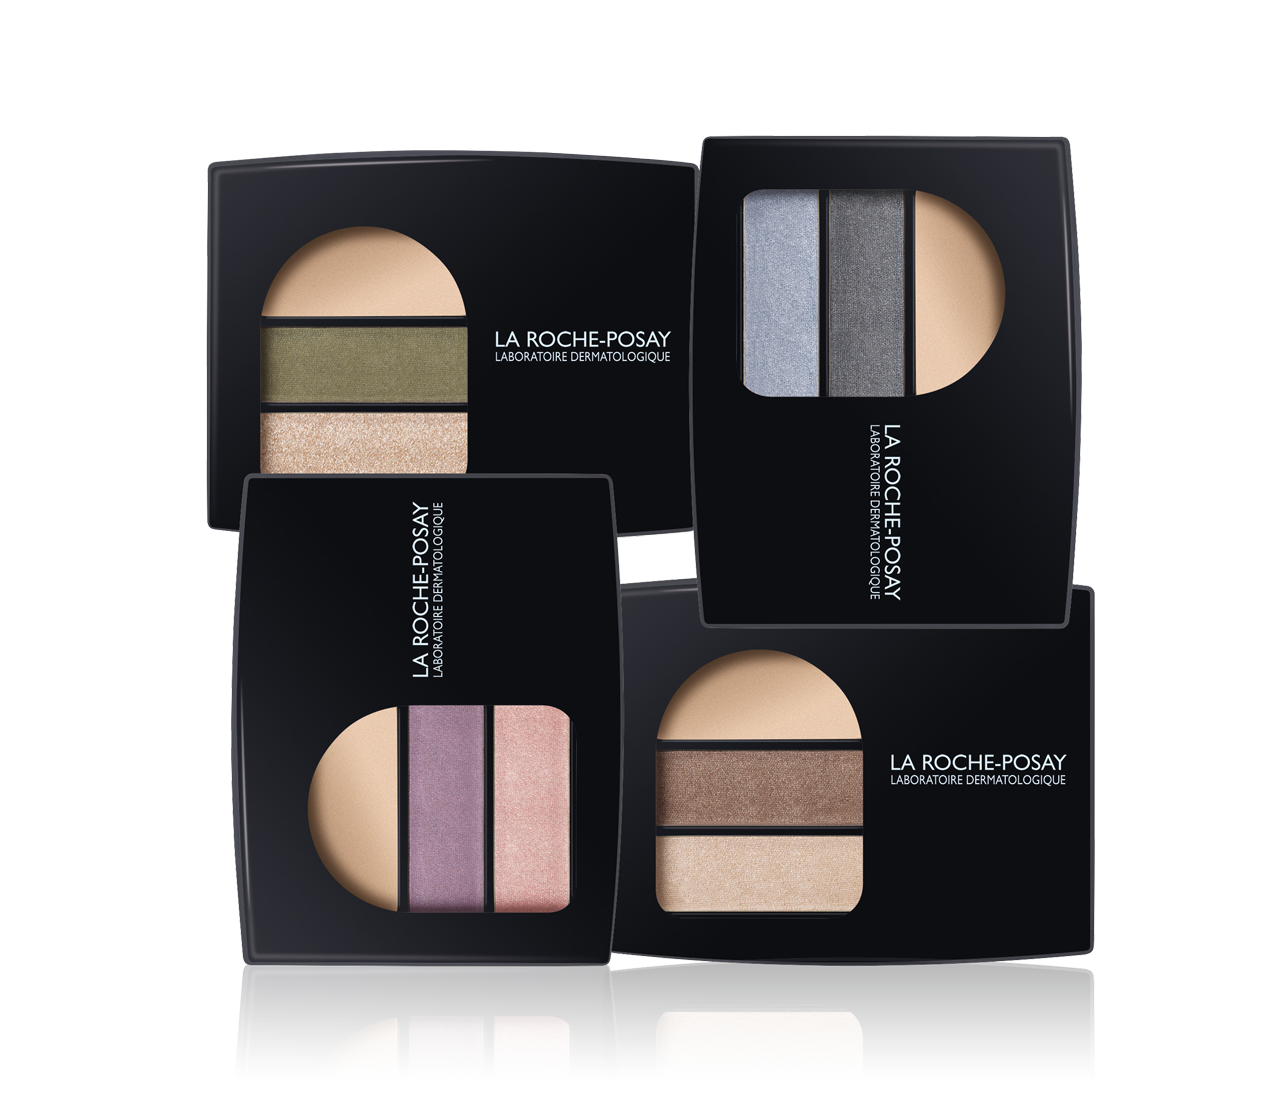 RESPECTISSIME OMBRE DOUCE packshot from Respectissime, by La Roche-Posay